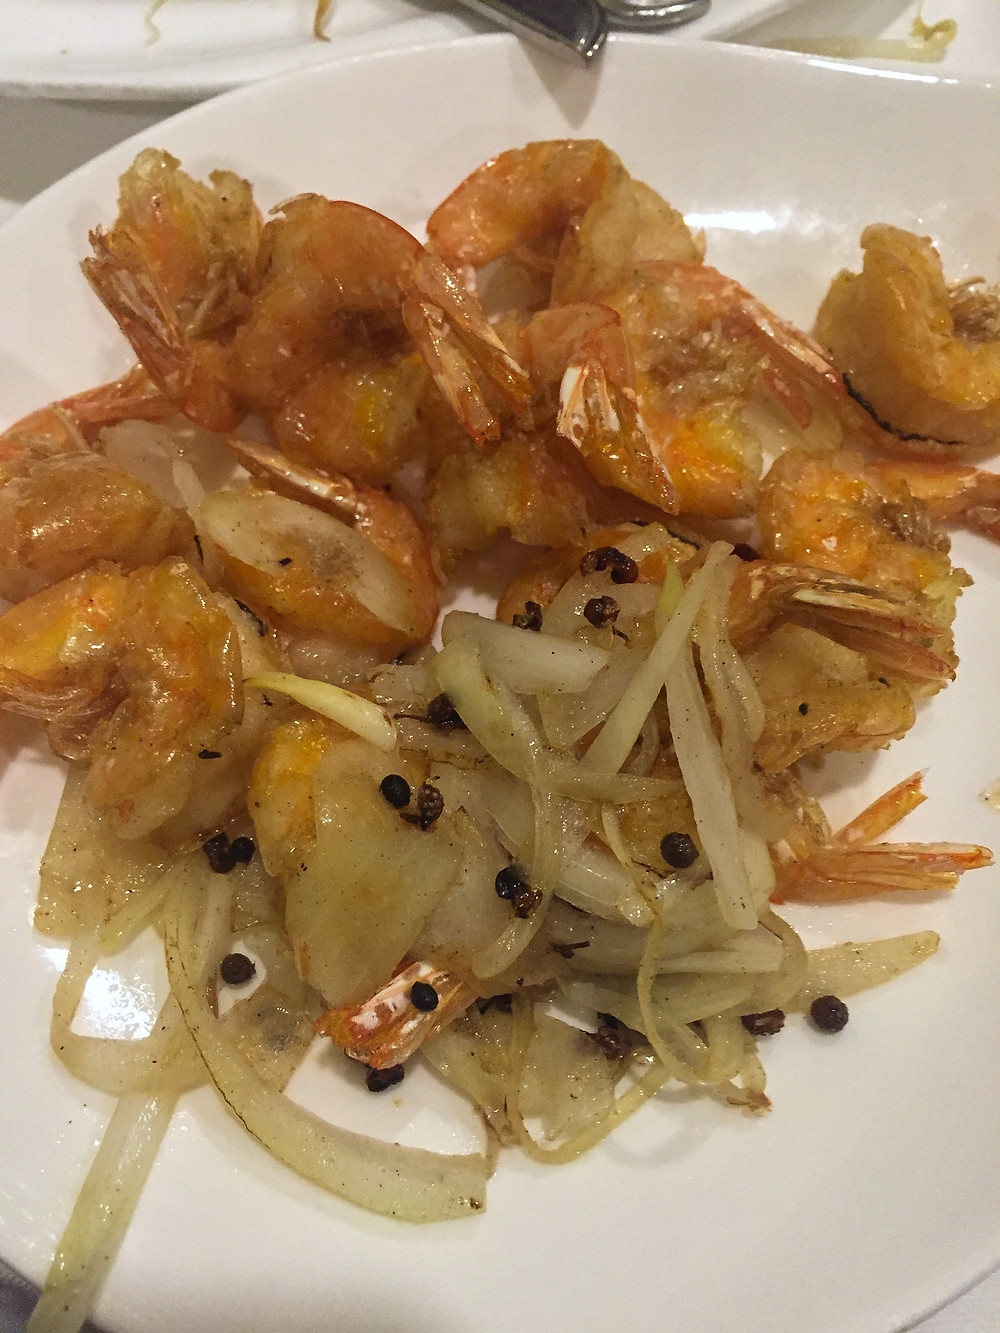 Prawns with salt and pepper jubin milano Cookingwiththehamster